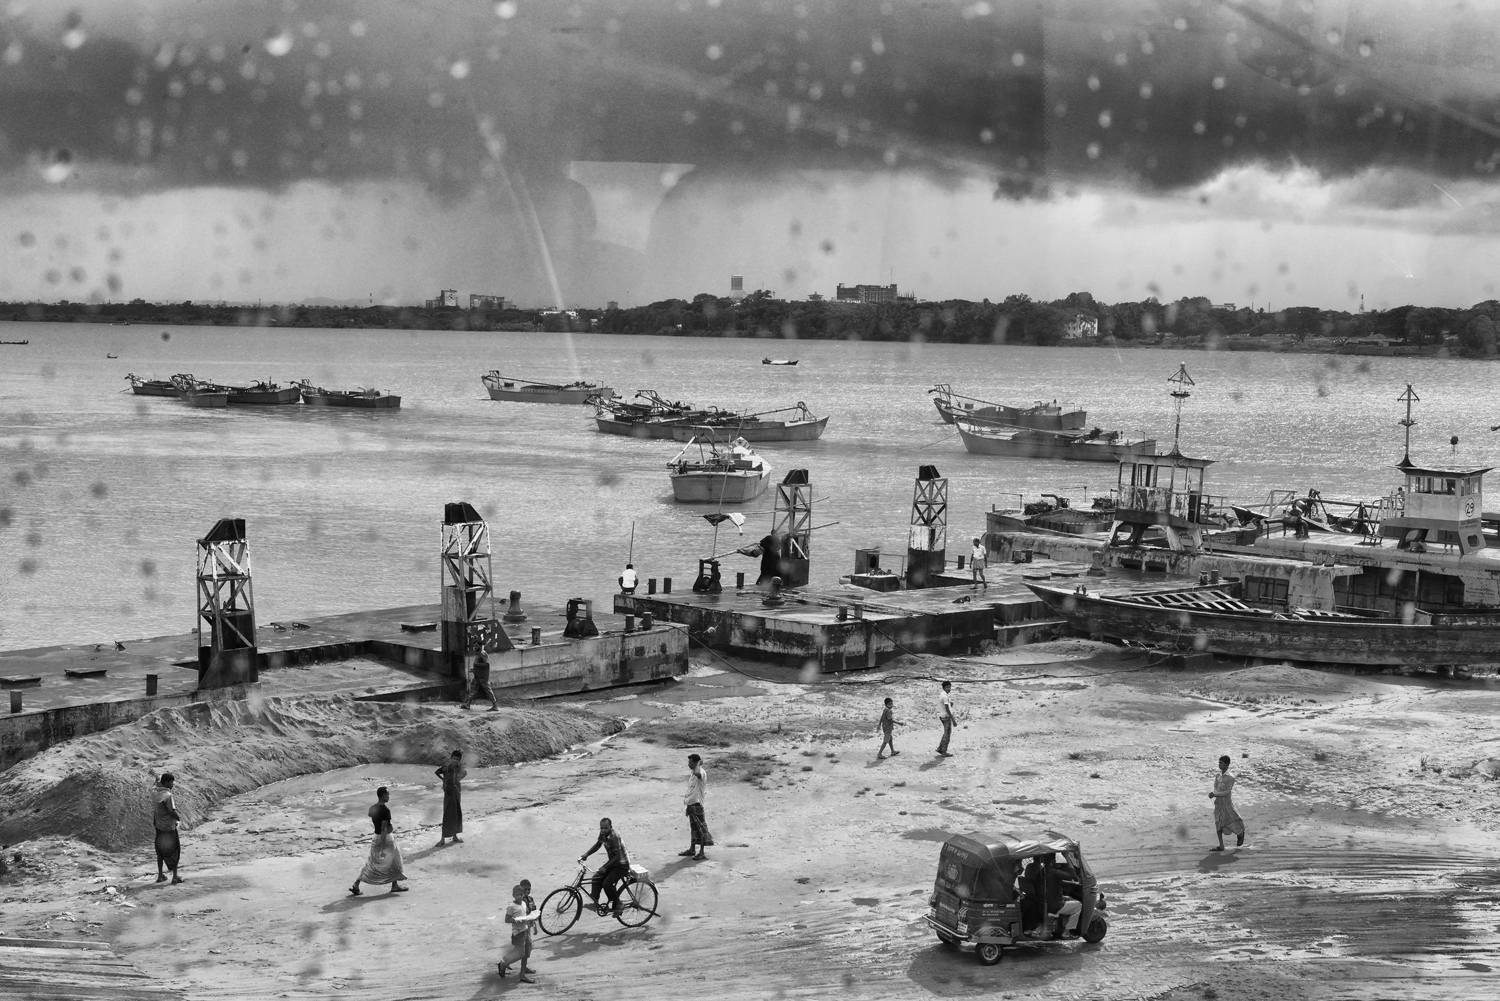 Workers seen here in the                               boatyards. The boatyards of Dhaka and Chittagong are one of the fundamental causes of                                pollution in South Dhaka, Bangladesh.